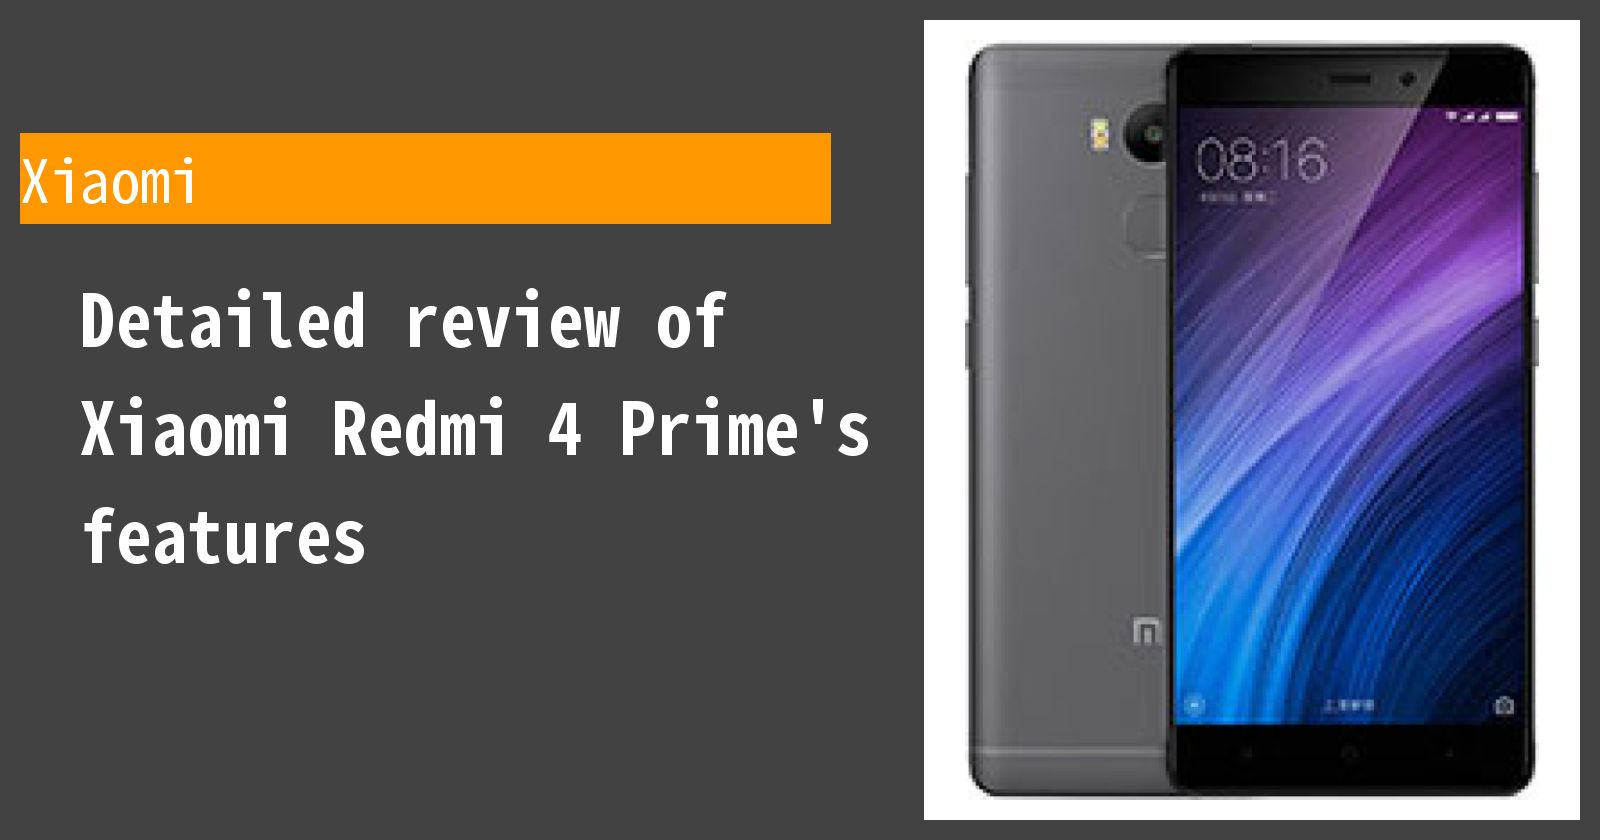 Detailed review of Xiaomi Redmi 4 Prime's features